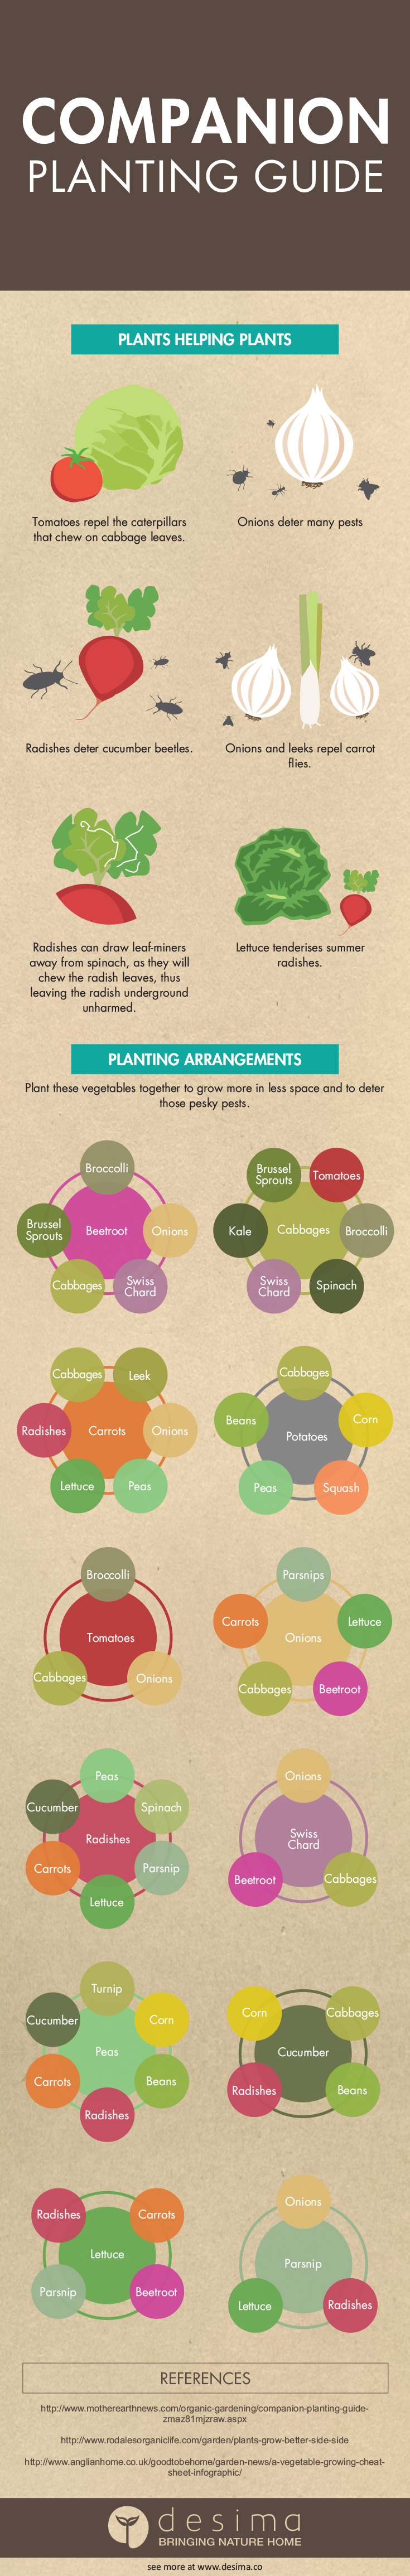 Companion planting guide infographic